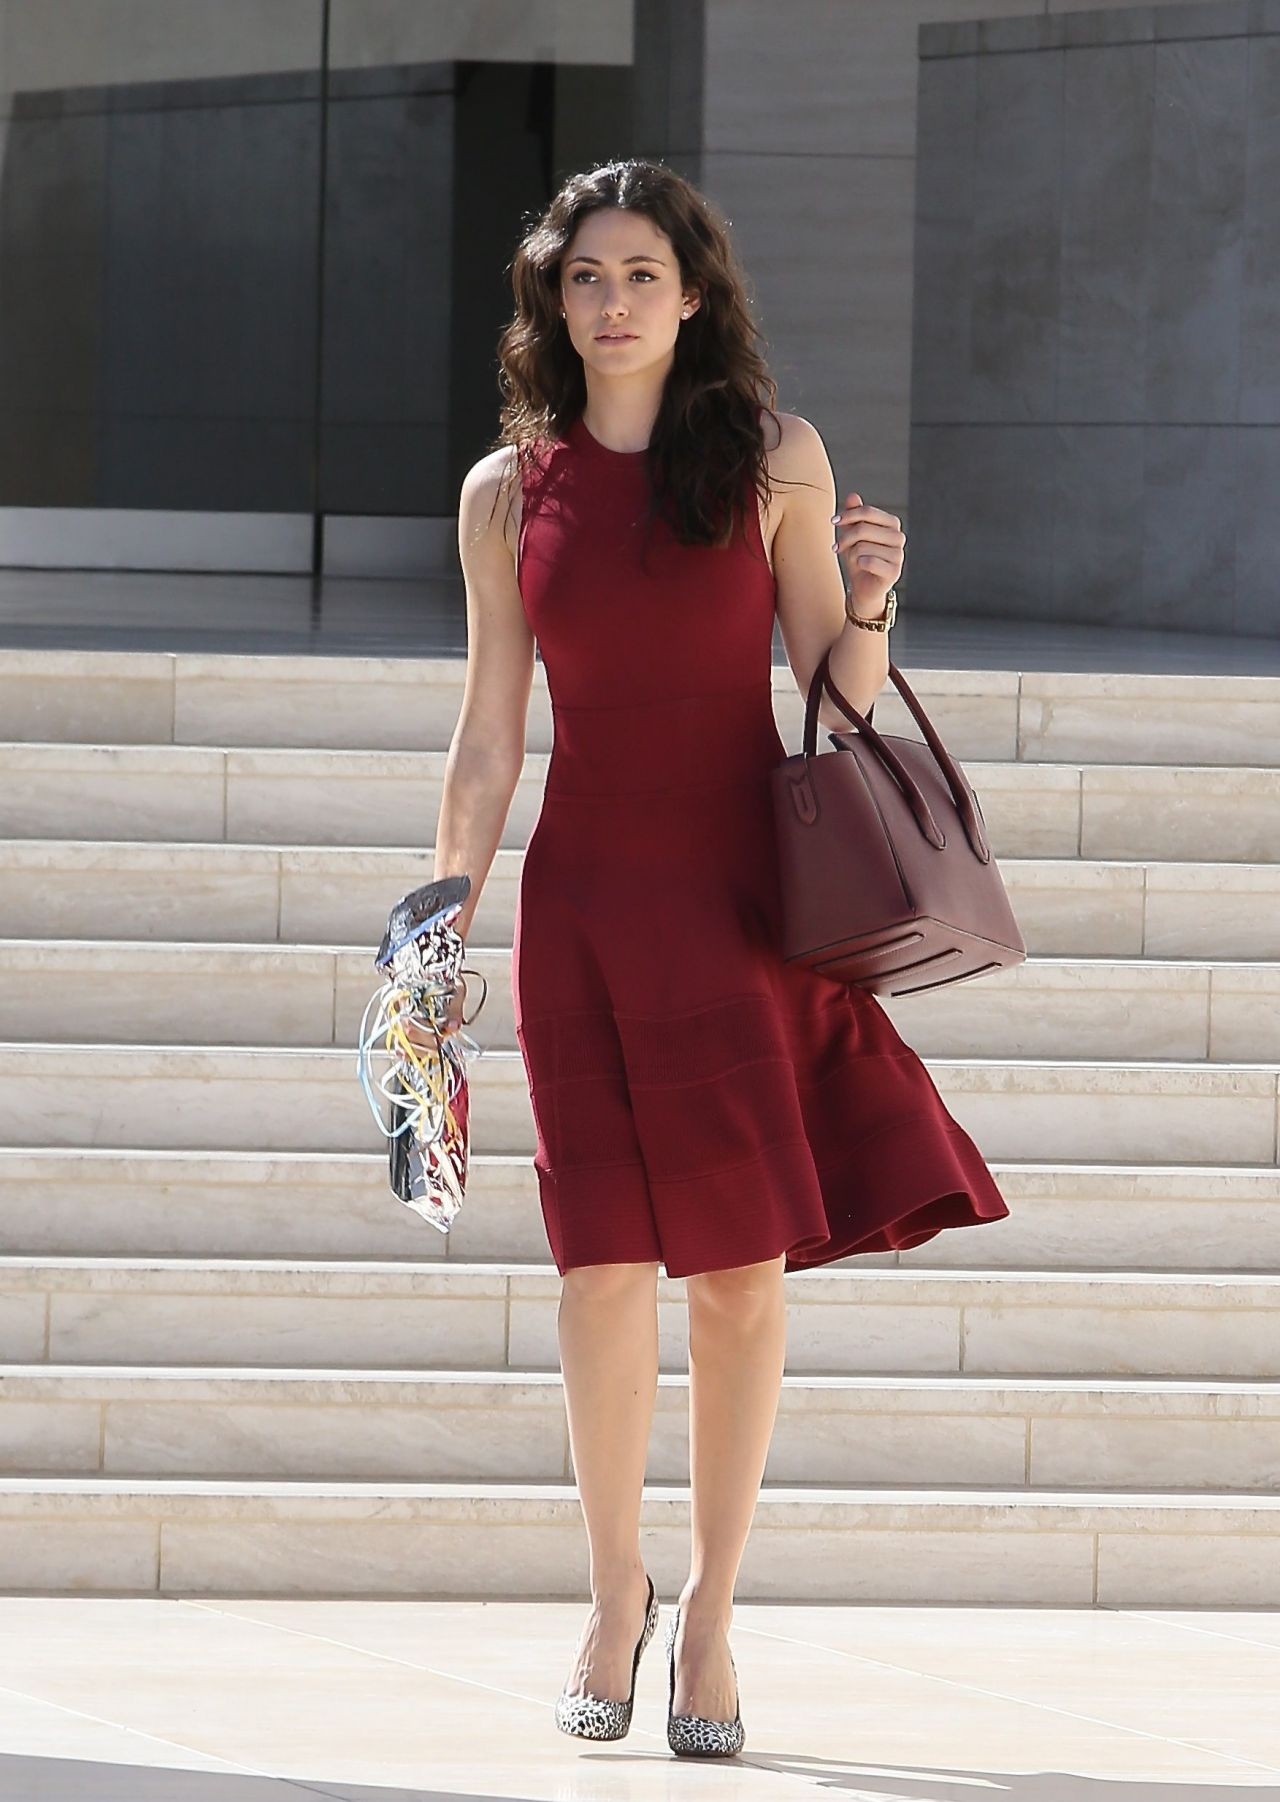 Emmy Rossum in Red Dress - Leaving a Birthday Party at Milk Studios in Hollywood